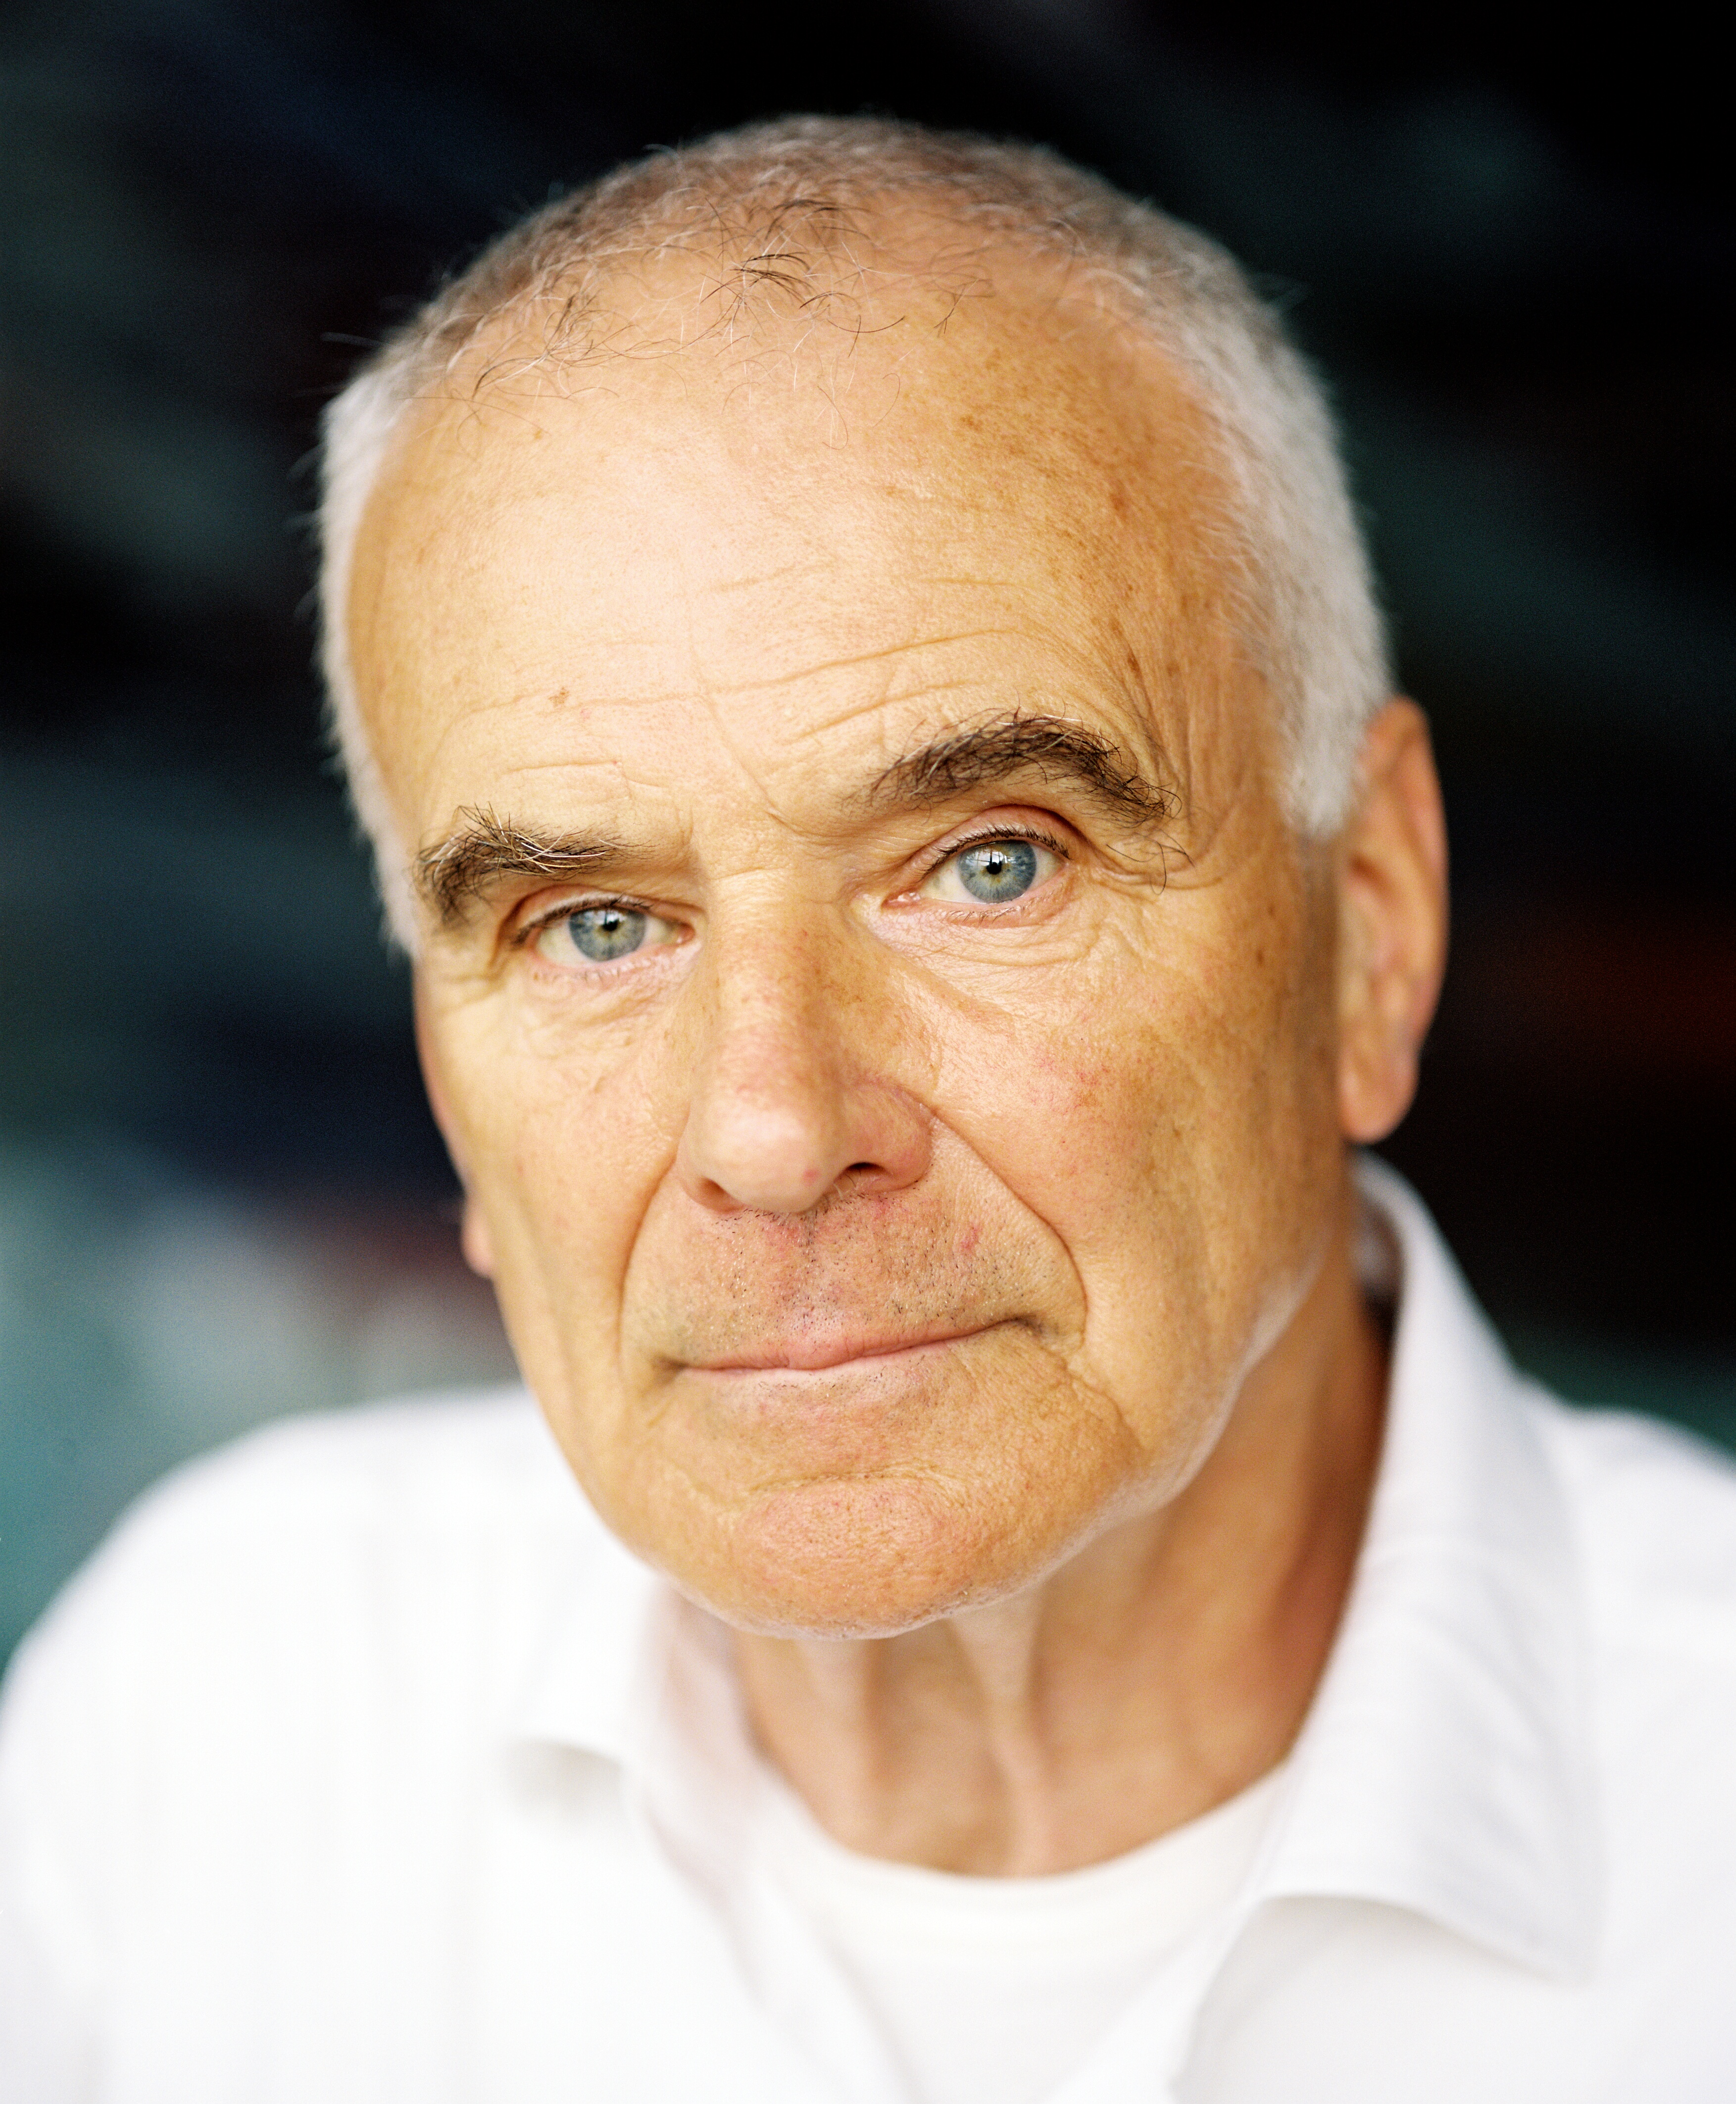 peter maxwell davies essay Online shopping for cds & vinyl from a great selection of solo instrumental, orchestral, concertos & symphonies, chamber music, opera & song, choral, ballets & dances & more at everyday low.